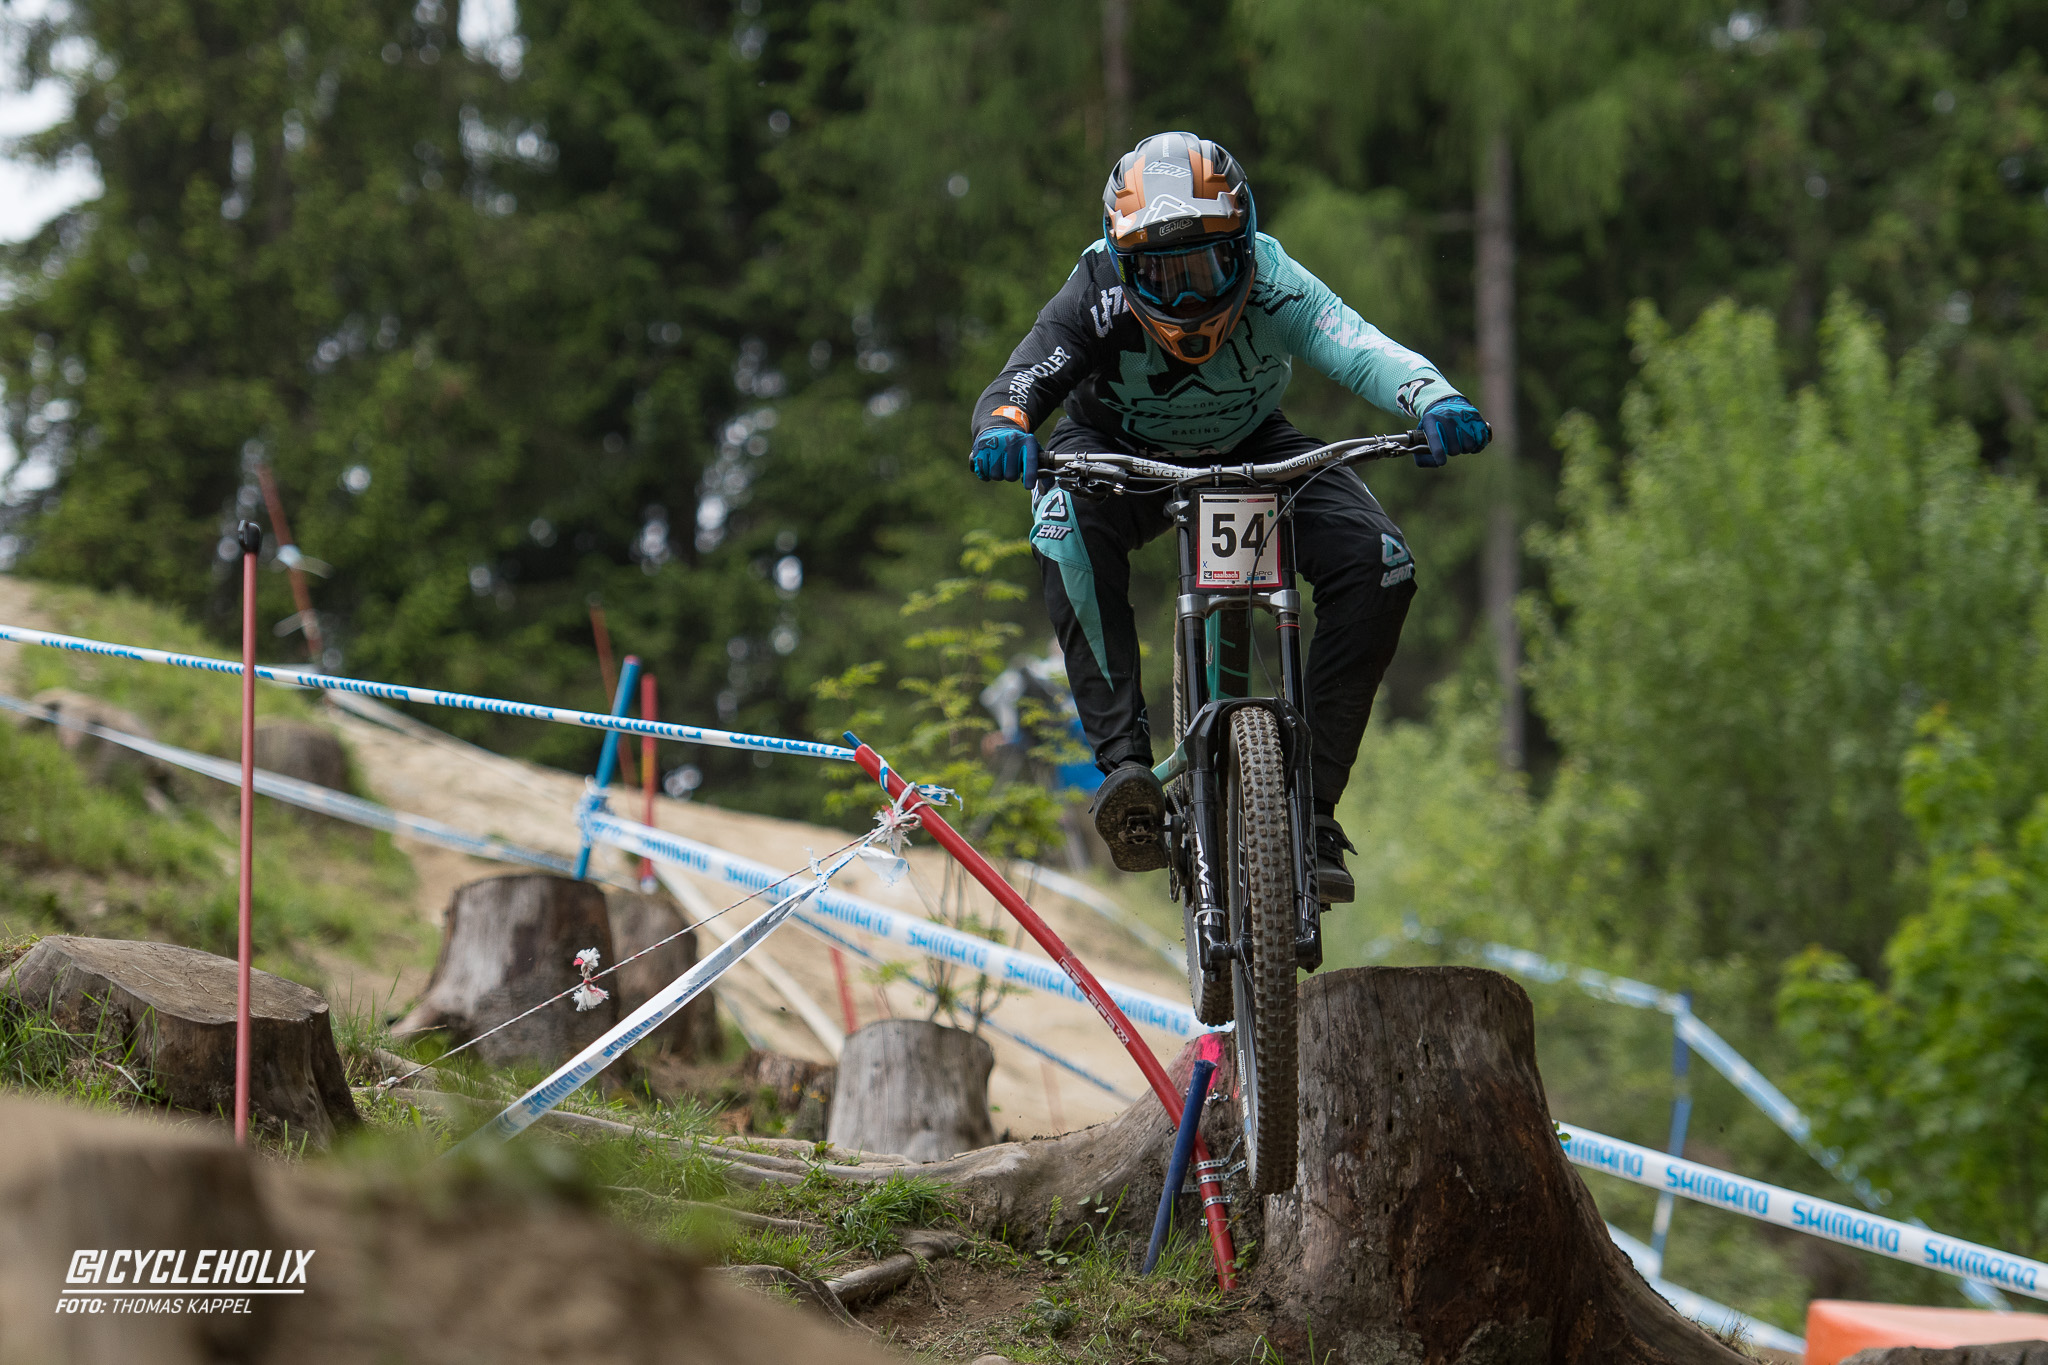 2019 Downhill Worldcup Leogang Finale Action QA 16 Cycleholix